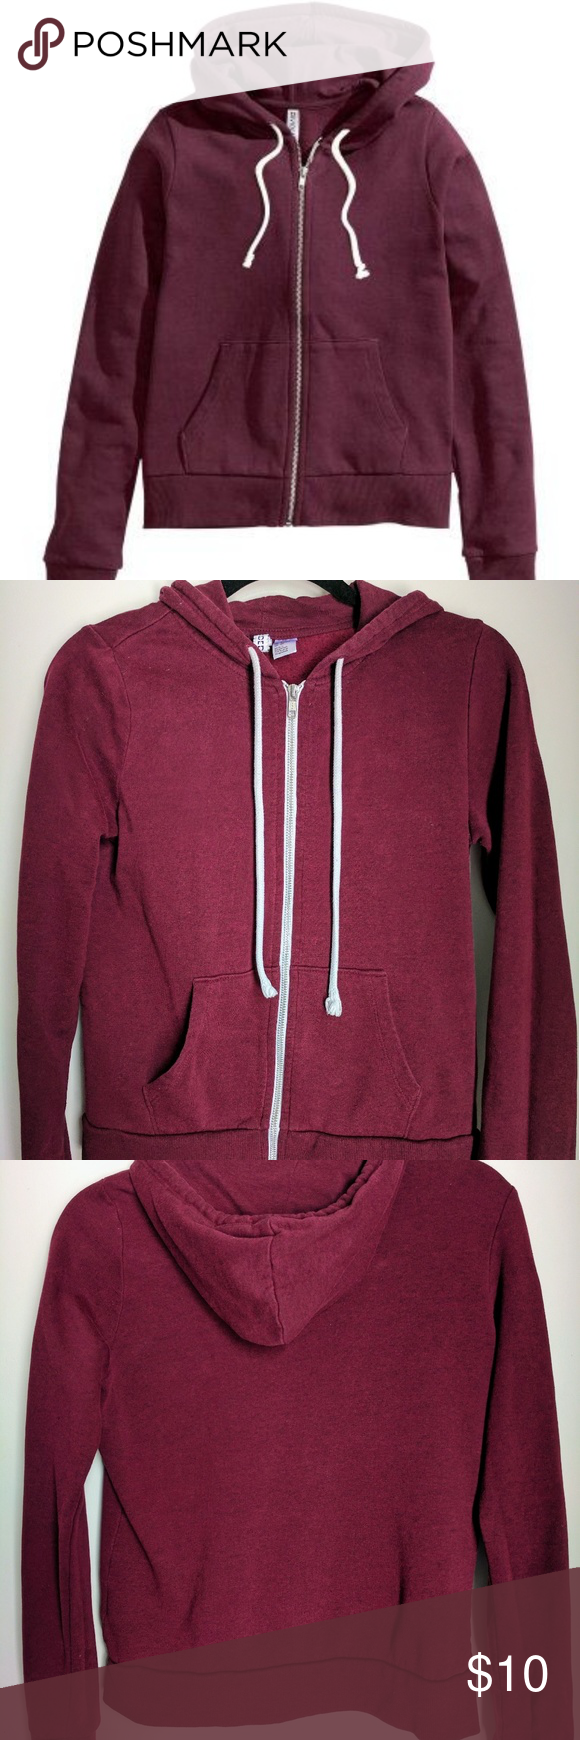 H&M Hoodie Burgundy | Hoodie, Customer support and Delivery